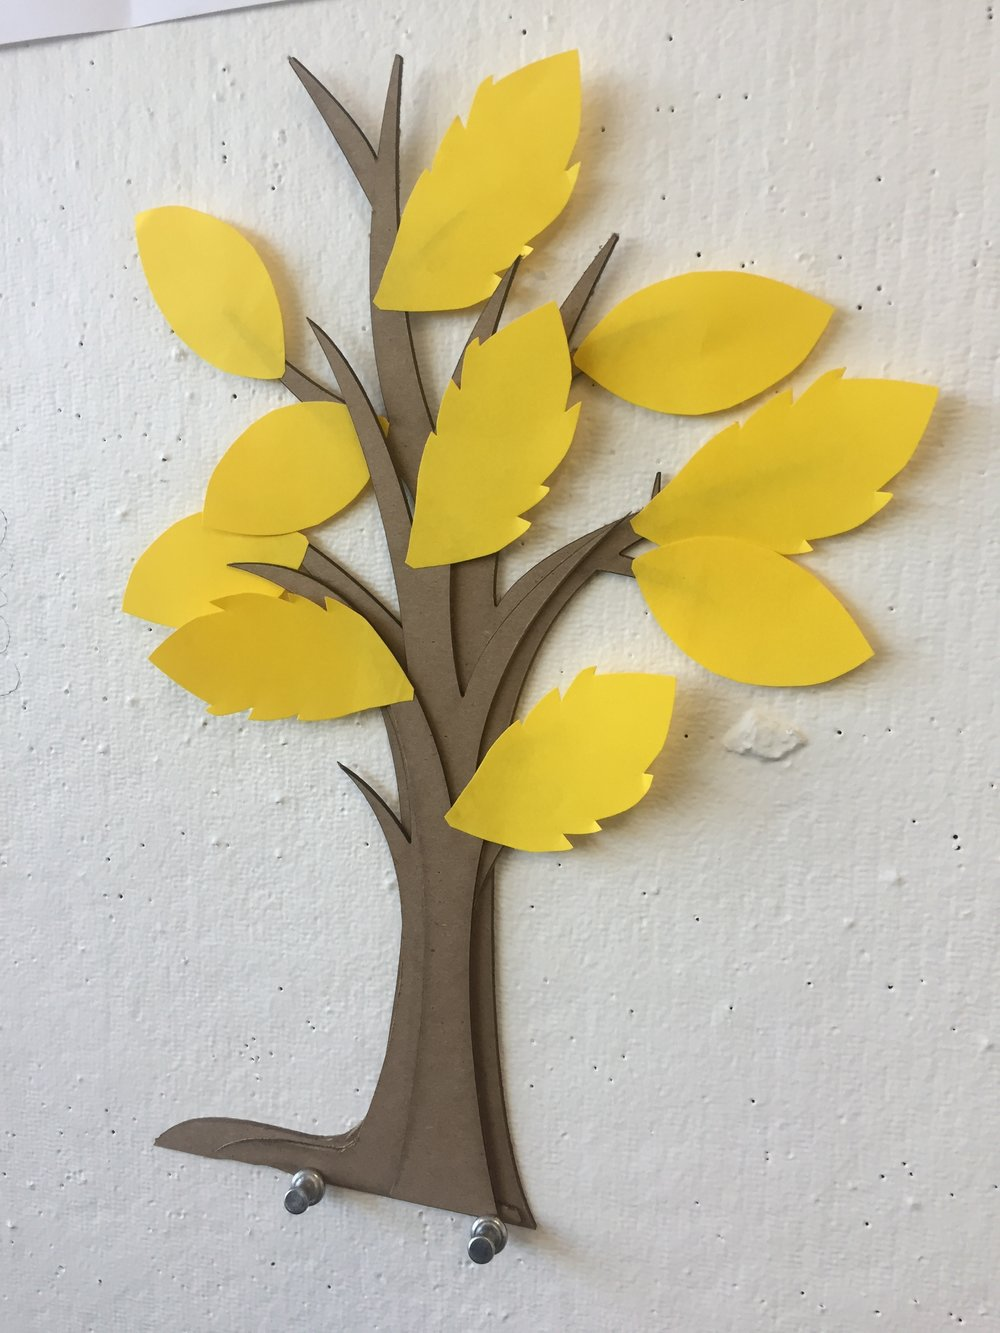 Prototype of the Physical Tree version